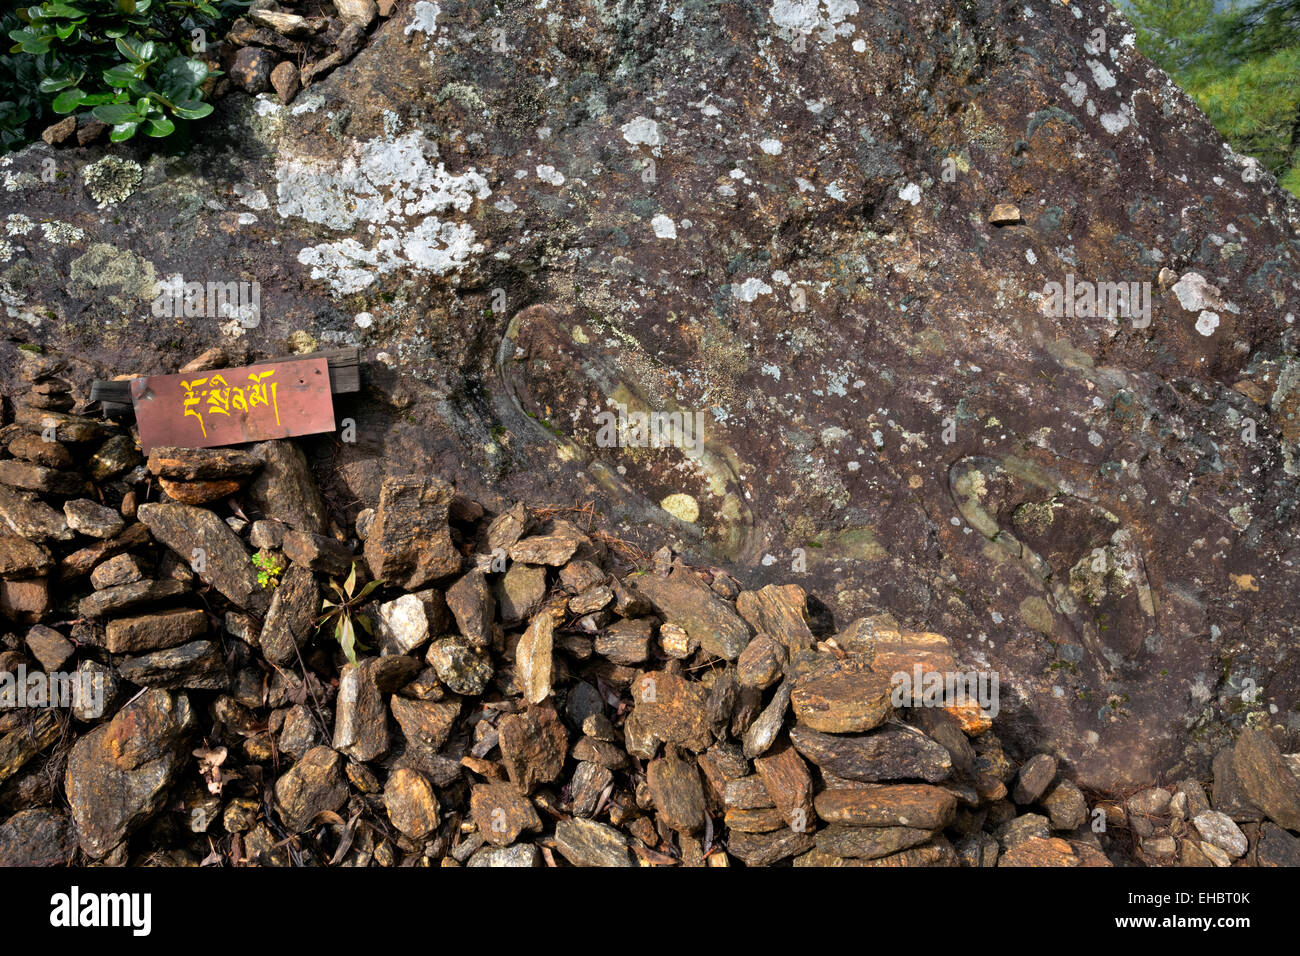 BHUTAN - Legend has it that these are footprints left by Guru Rinpoche who arrived the first time on a back of a - Stock Image